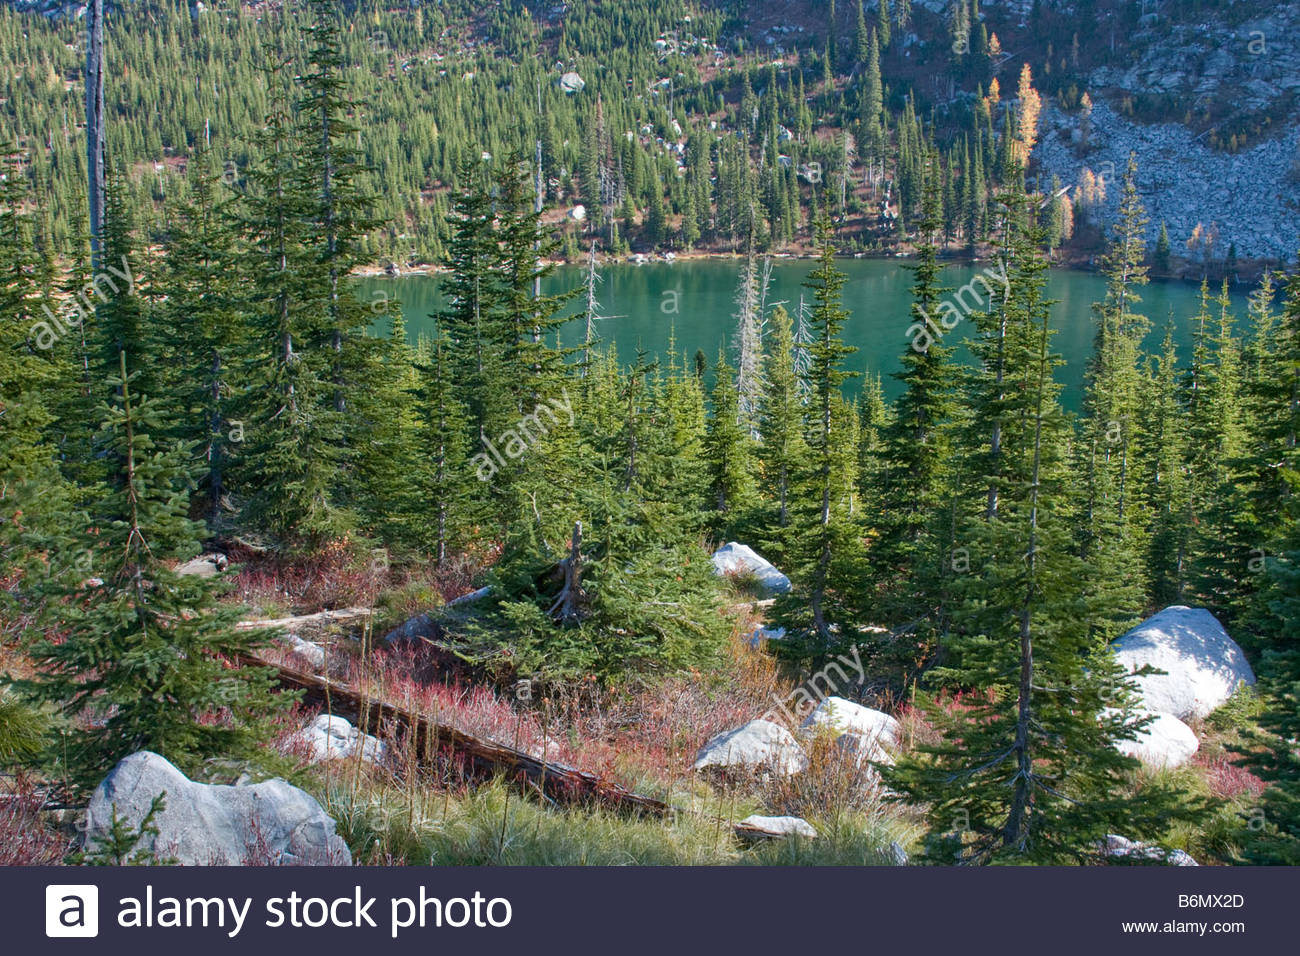 Roman Nose Lake in the Sub Alpine wilderness of the Selkirk Mountains in North Idaho - Stock Image